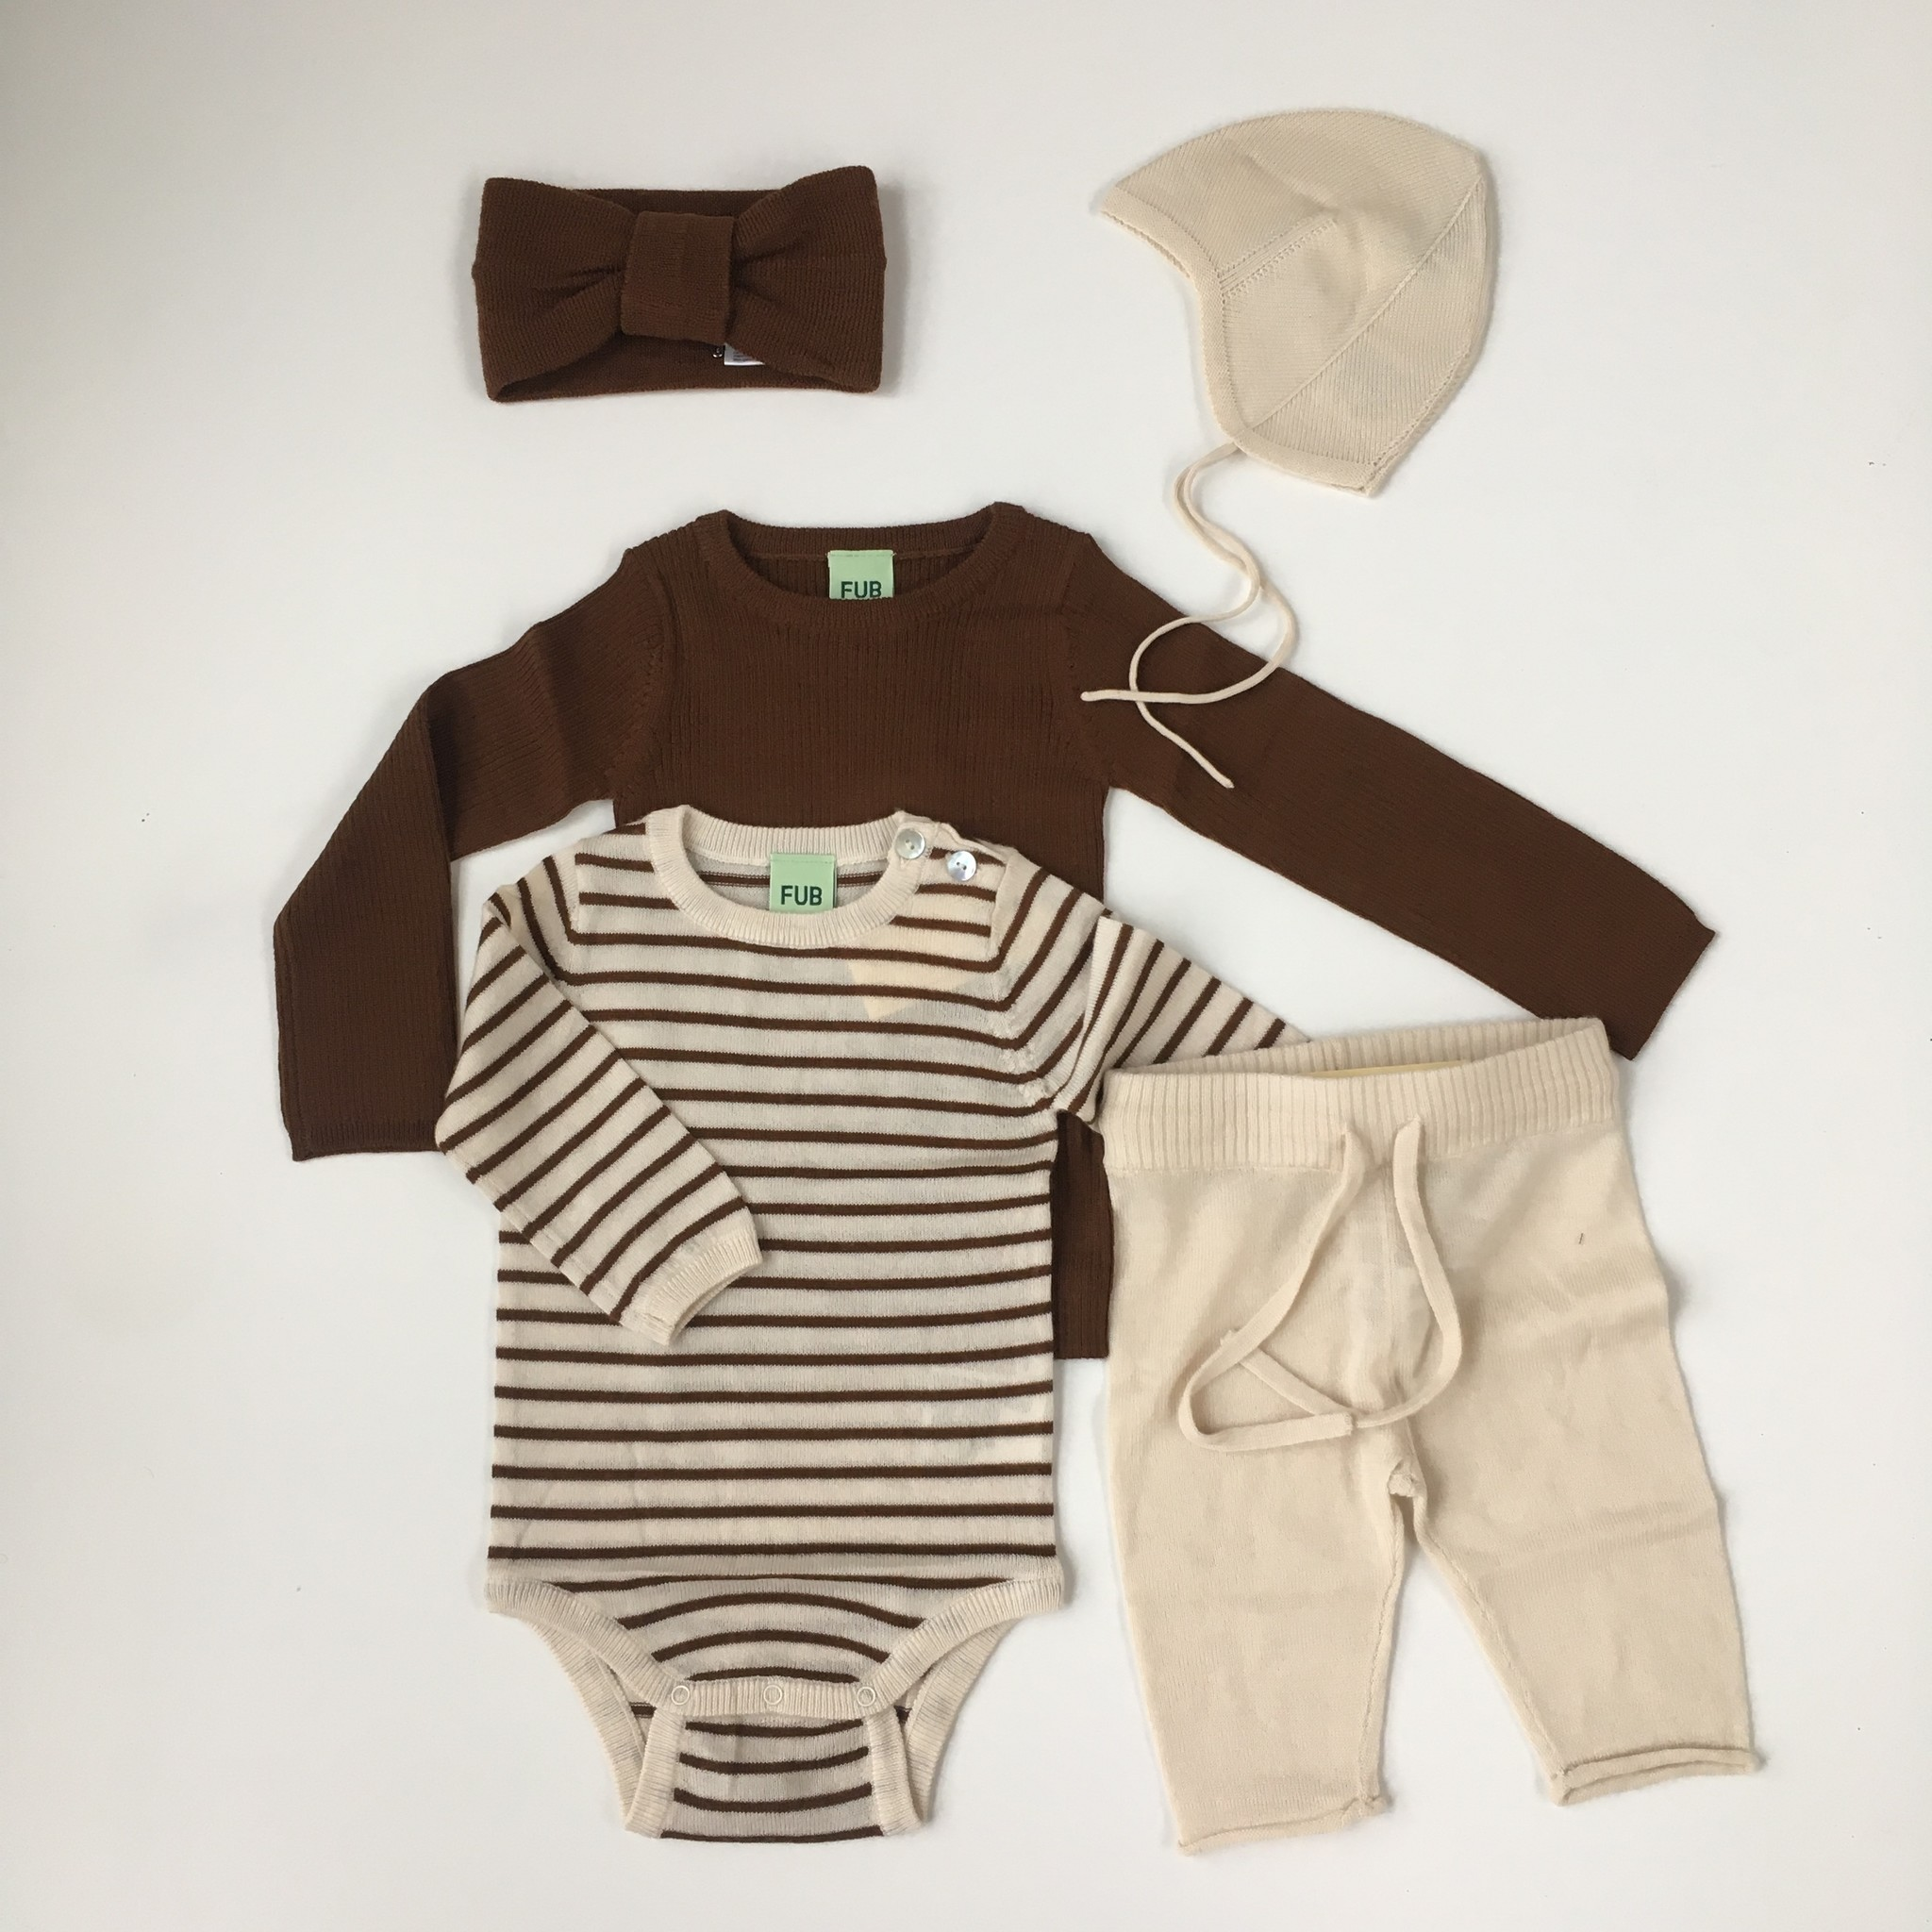 FUB woolen baby pants - 100% merino finely knitted - ecru - 56 to 92